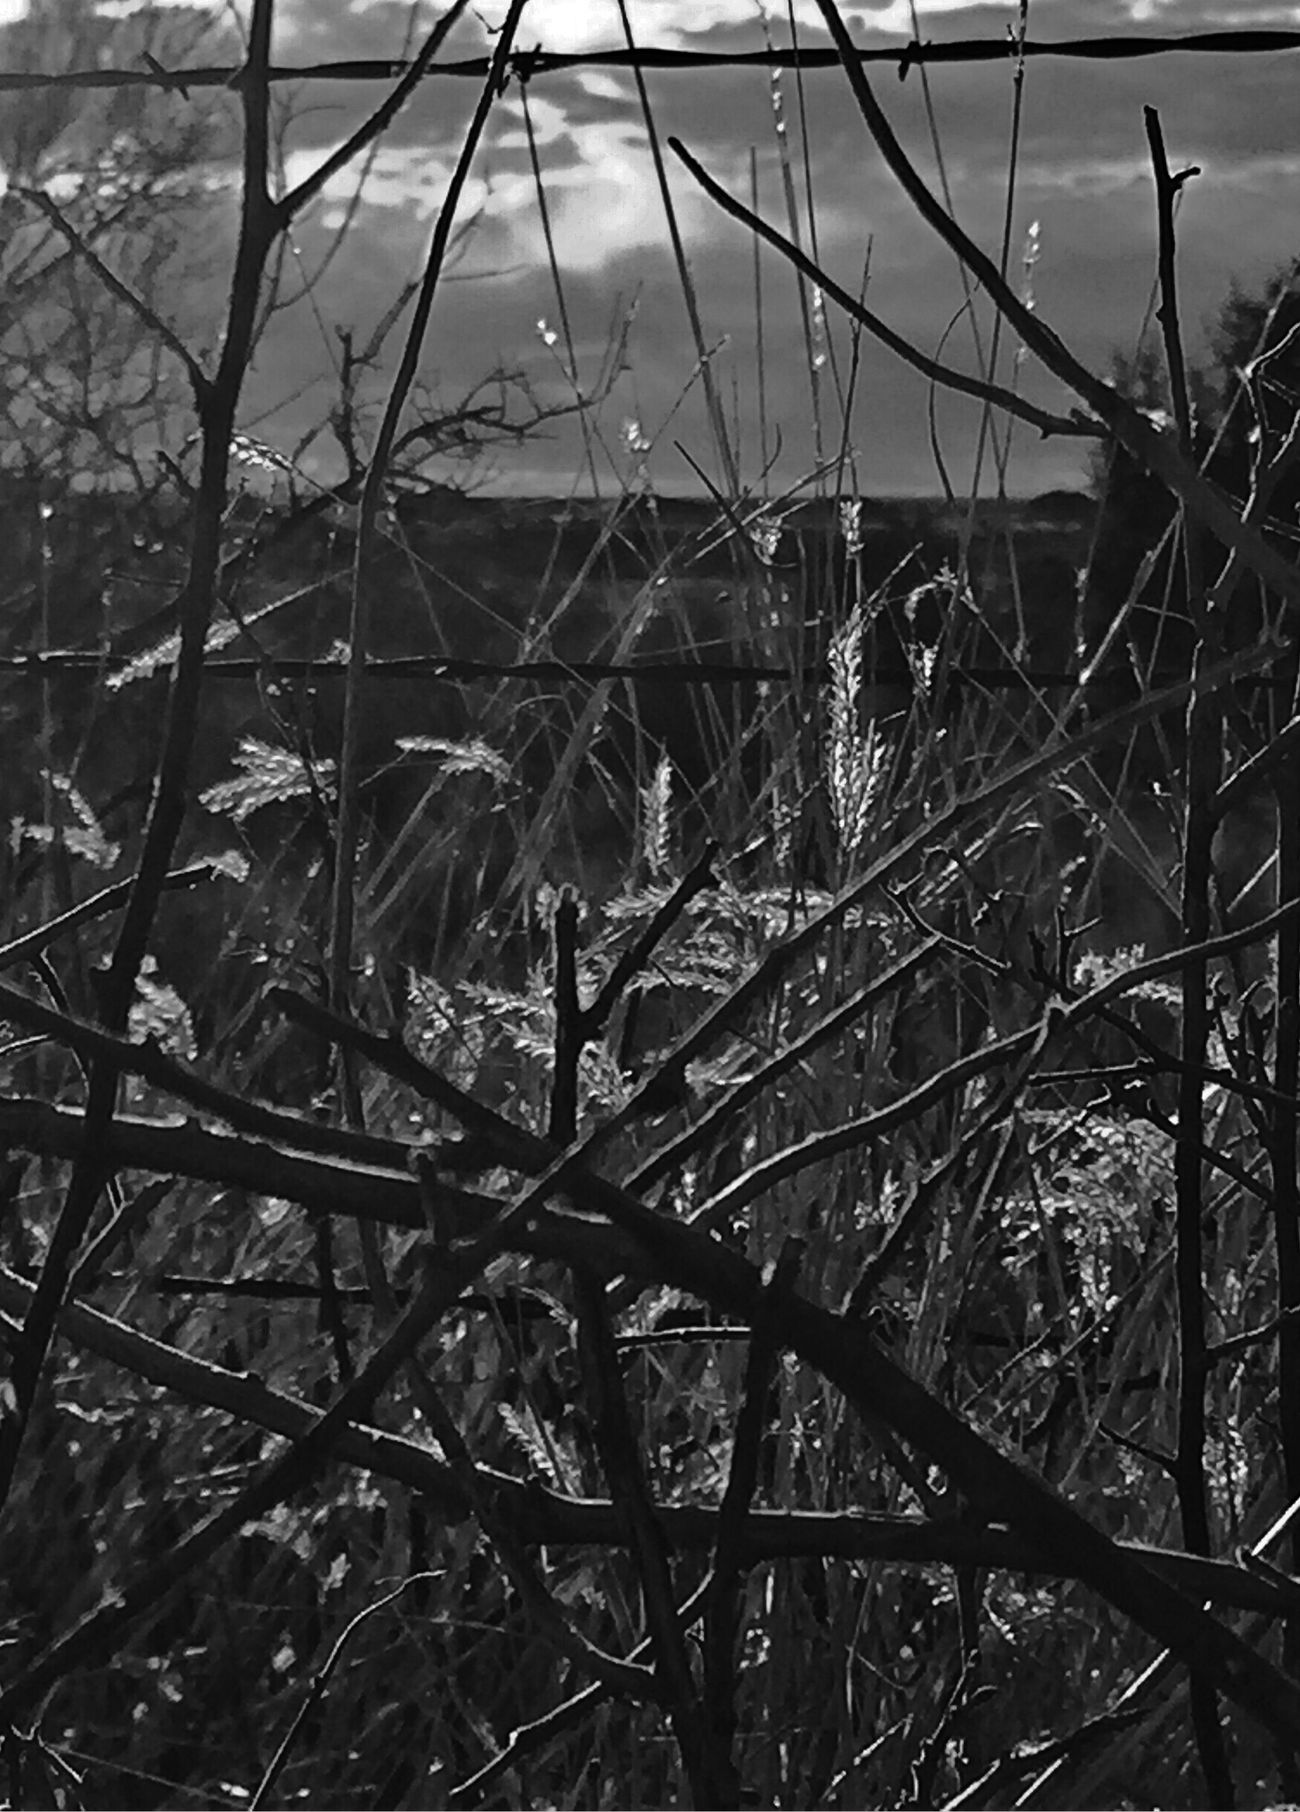 http://youtu.be/_bKfDOeePfo Light And Love Darkness And Light Naturelovers Untold Stories Landscape_Collection EyeEm Nature Lover EyeEm Music Lover Texas Panhandle We Own The Light Tadaa Community EyeEm Mood And Music Eye4photography  Bnw_collection Monochrome Fortheloveofblackandwhite Always :-)